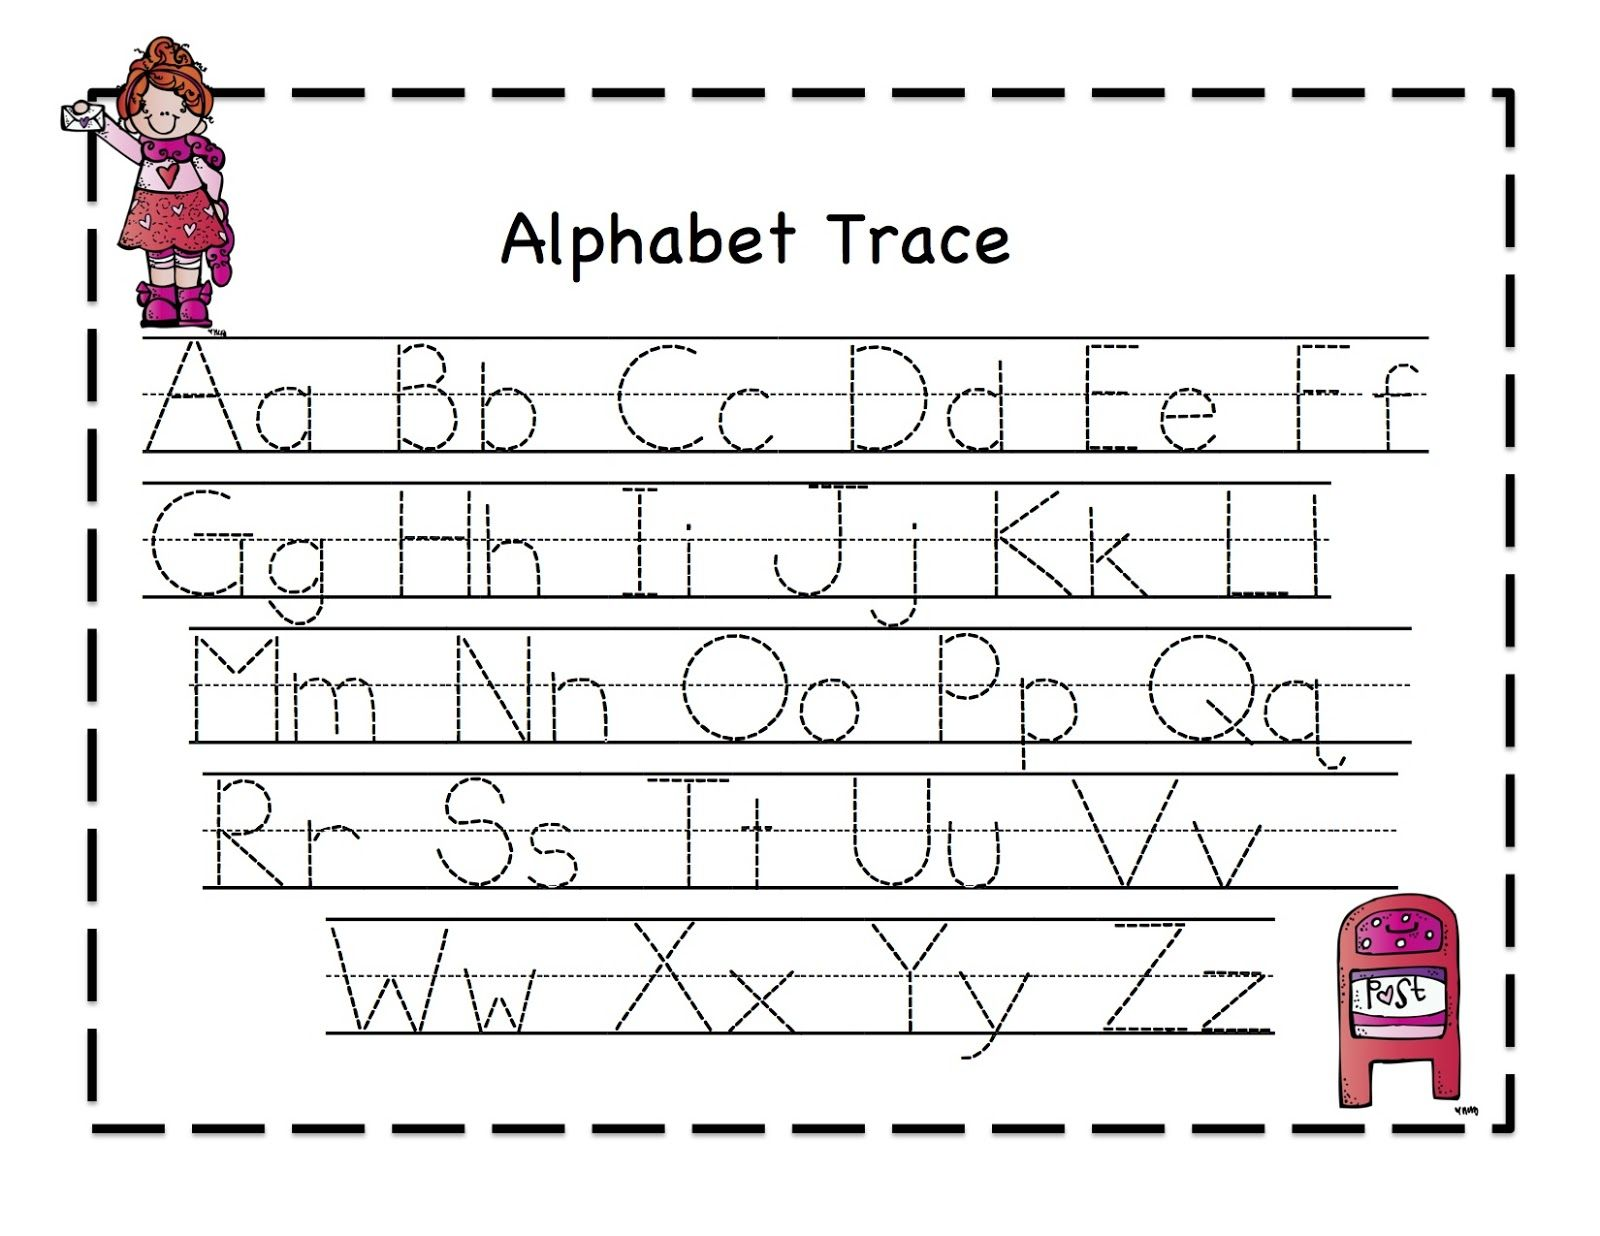 Worksheets Tracer Worksheets abc tracing sheets for preschool kids kiddo shelter alphabet and shelter